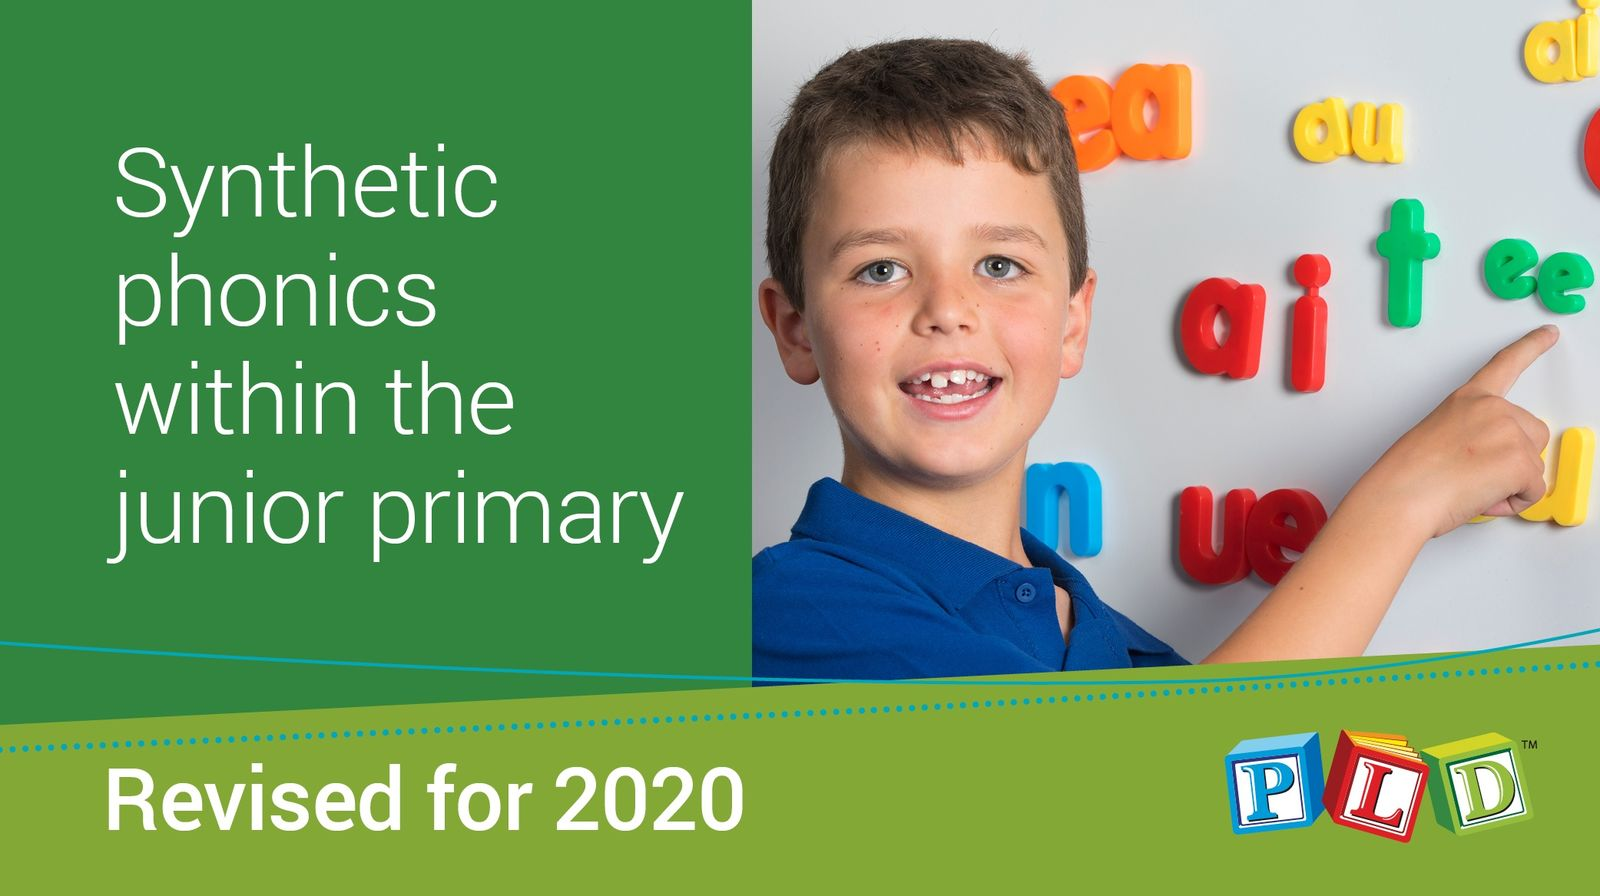 Synthetic phonics within junior primary